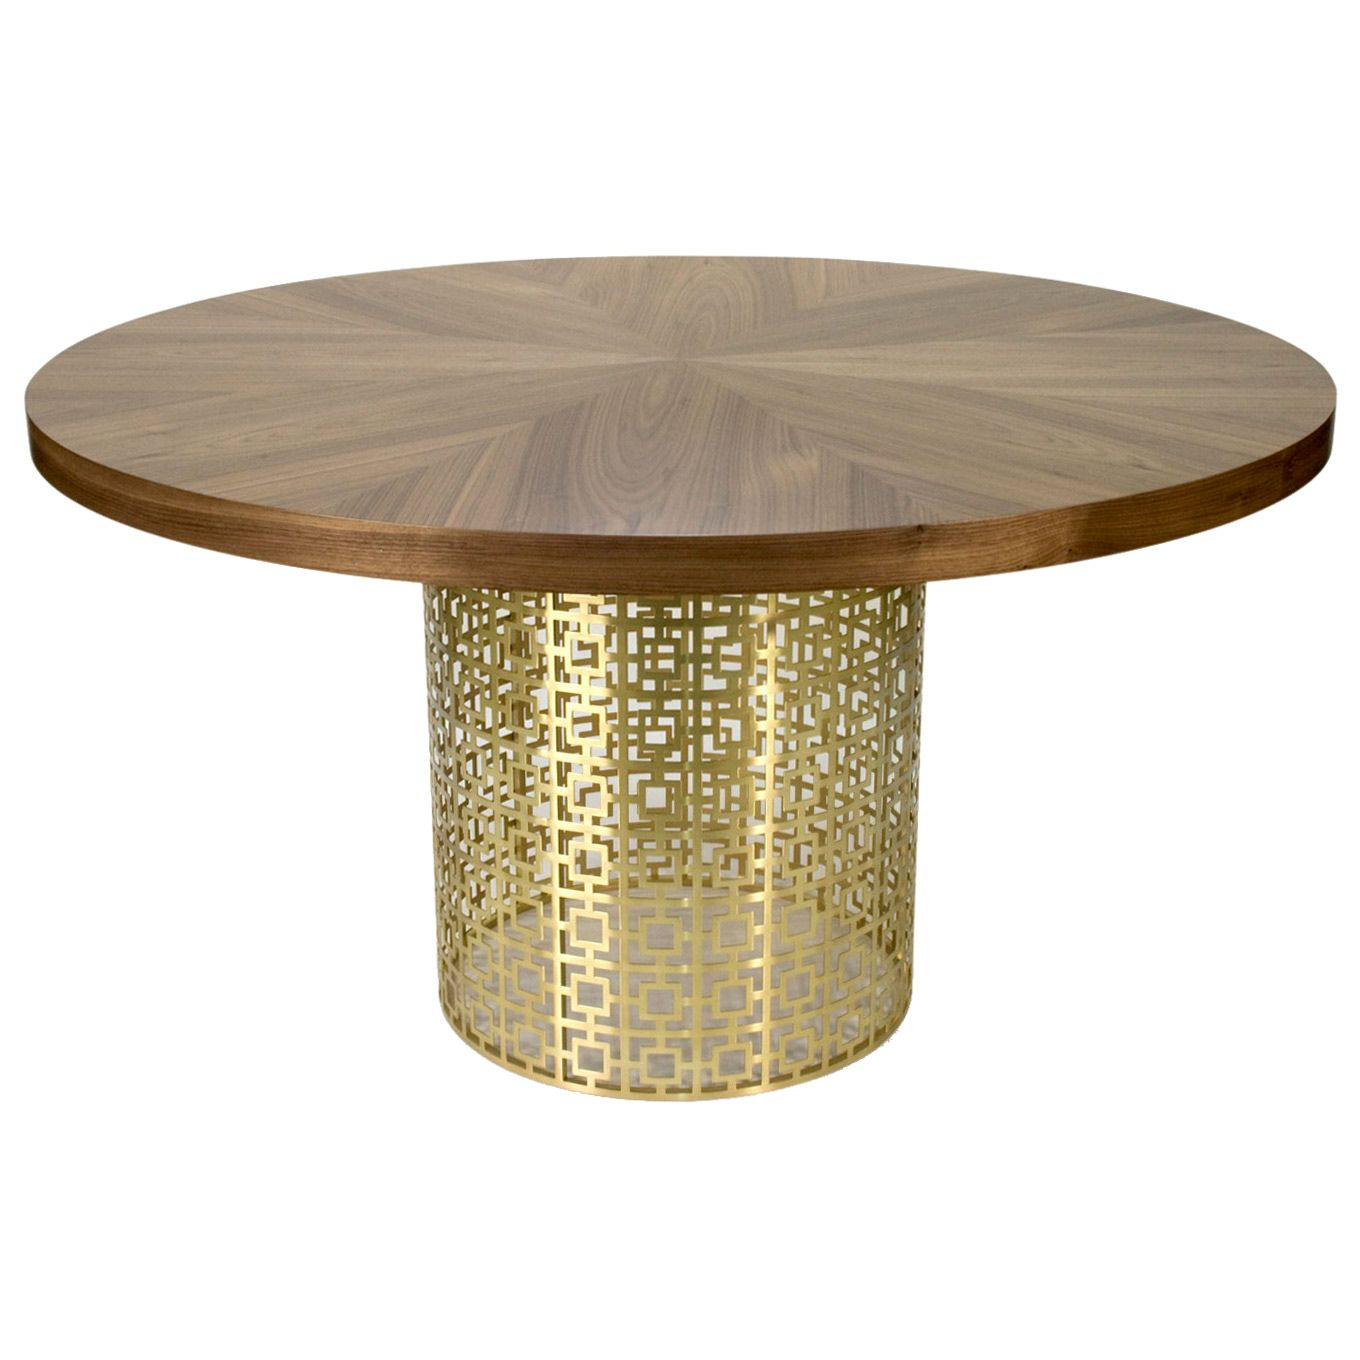 Ooooh! This Jonathan Adler table instead of a traditional desk in our extra room!?